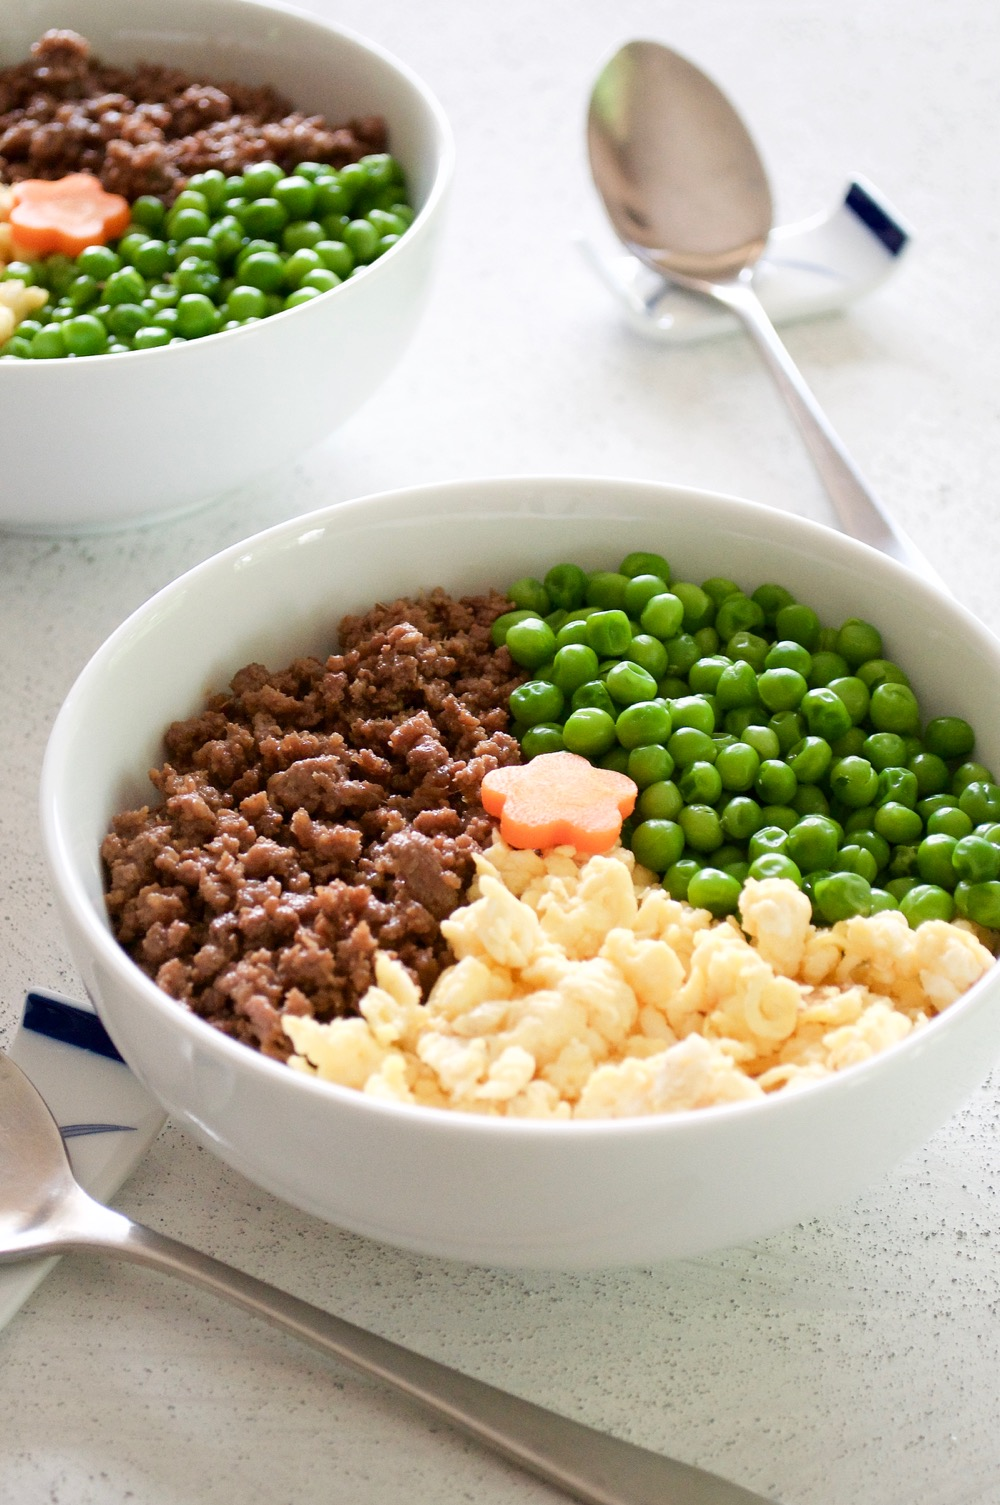 Japanese Rice Bowl (Sanshoku Bento) - Lovely looking rice bowl dish with three toppings - egg, beef mince and peas. You can use pork mince or chicken mince if you like and greens can be chopped snow peas or even spinach. Perfect for kid's lunch! https://japan.recipetineats.com